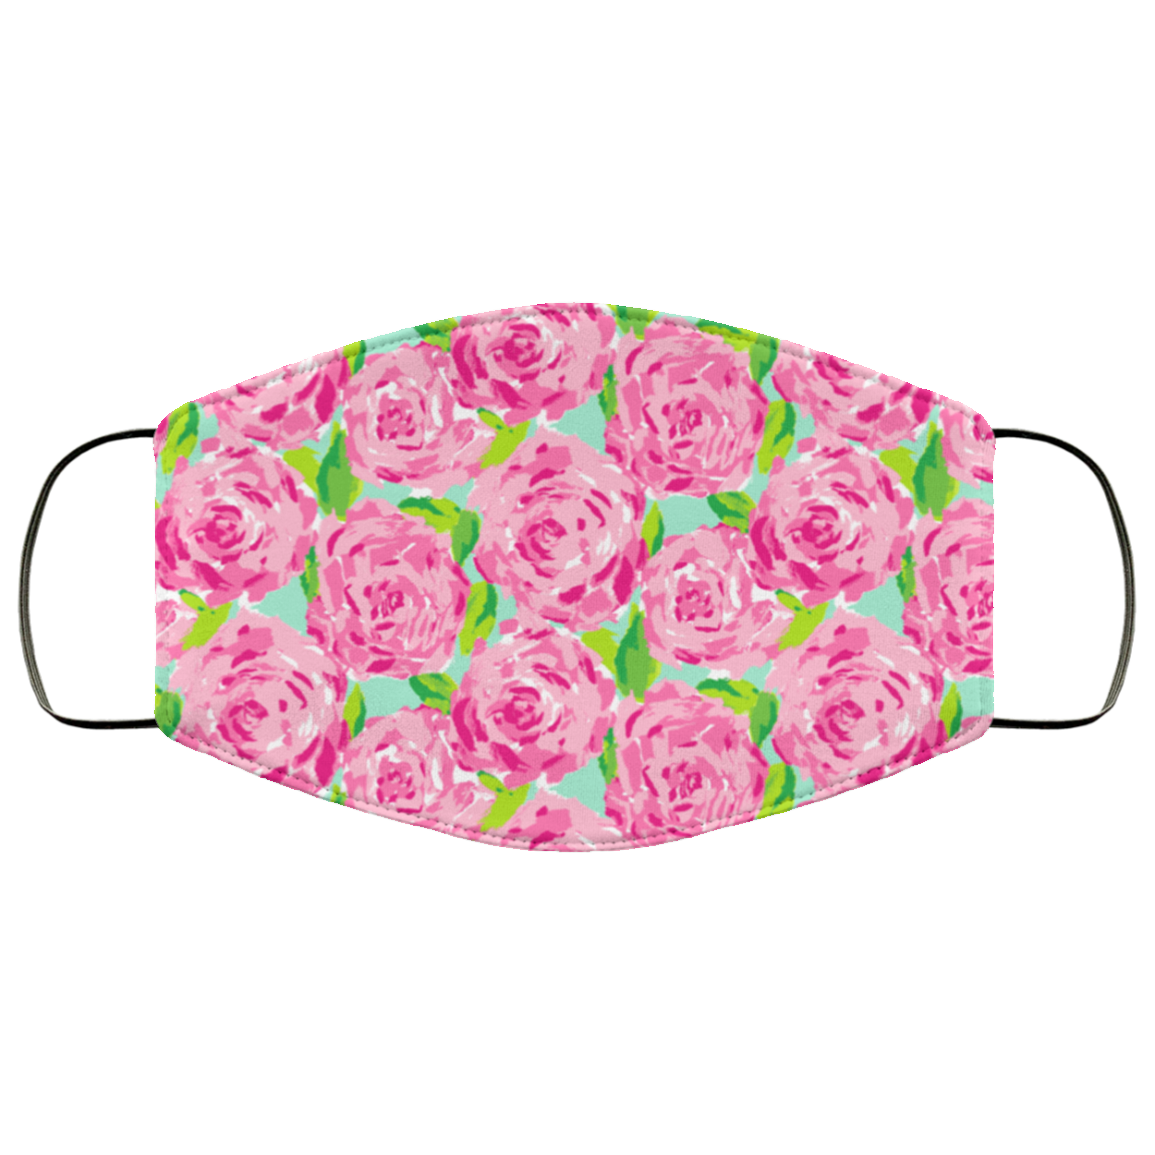 Lilly Pulitzer Inspired Pink Floral Face Mask